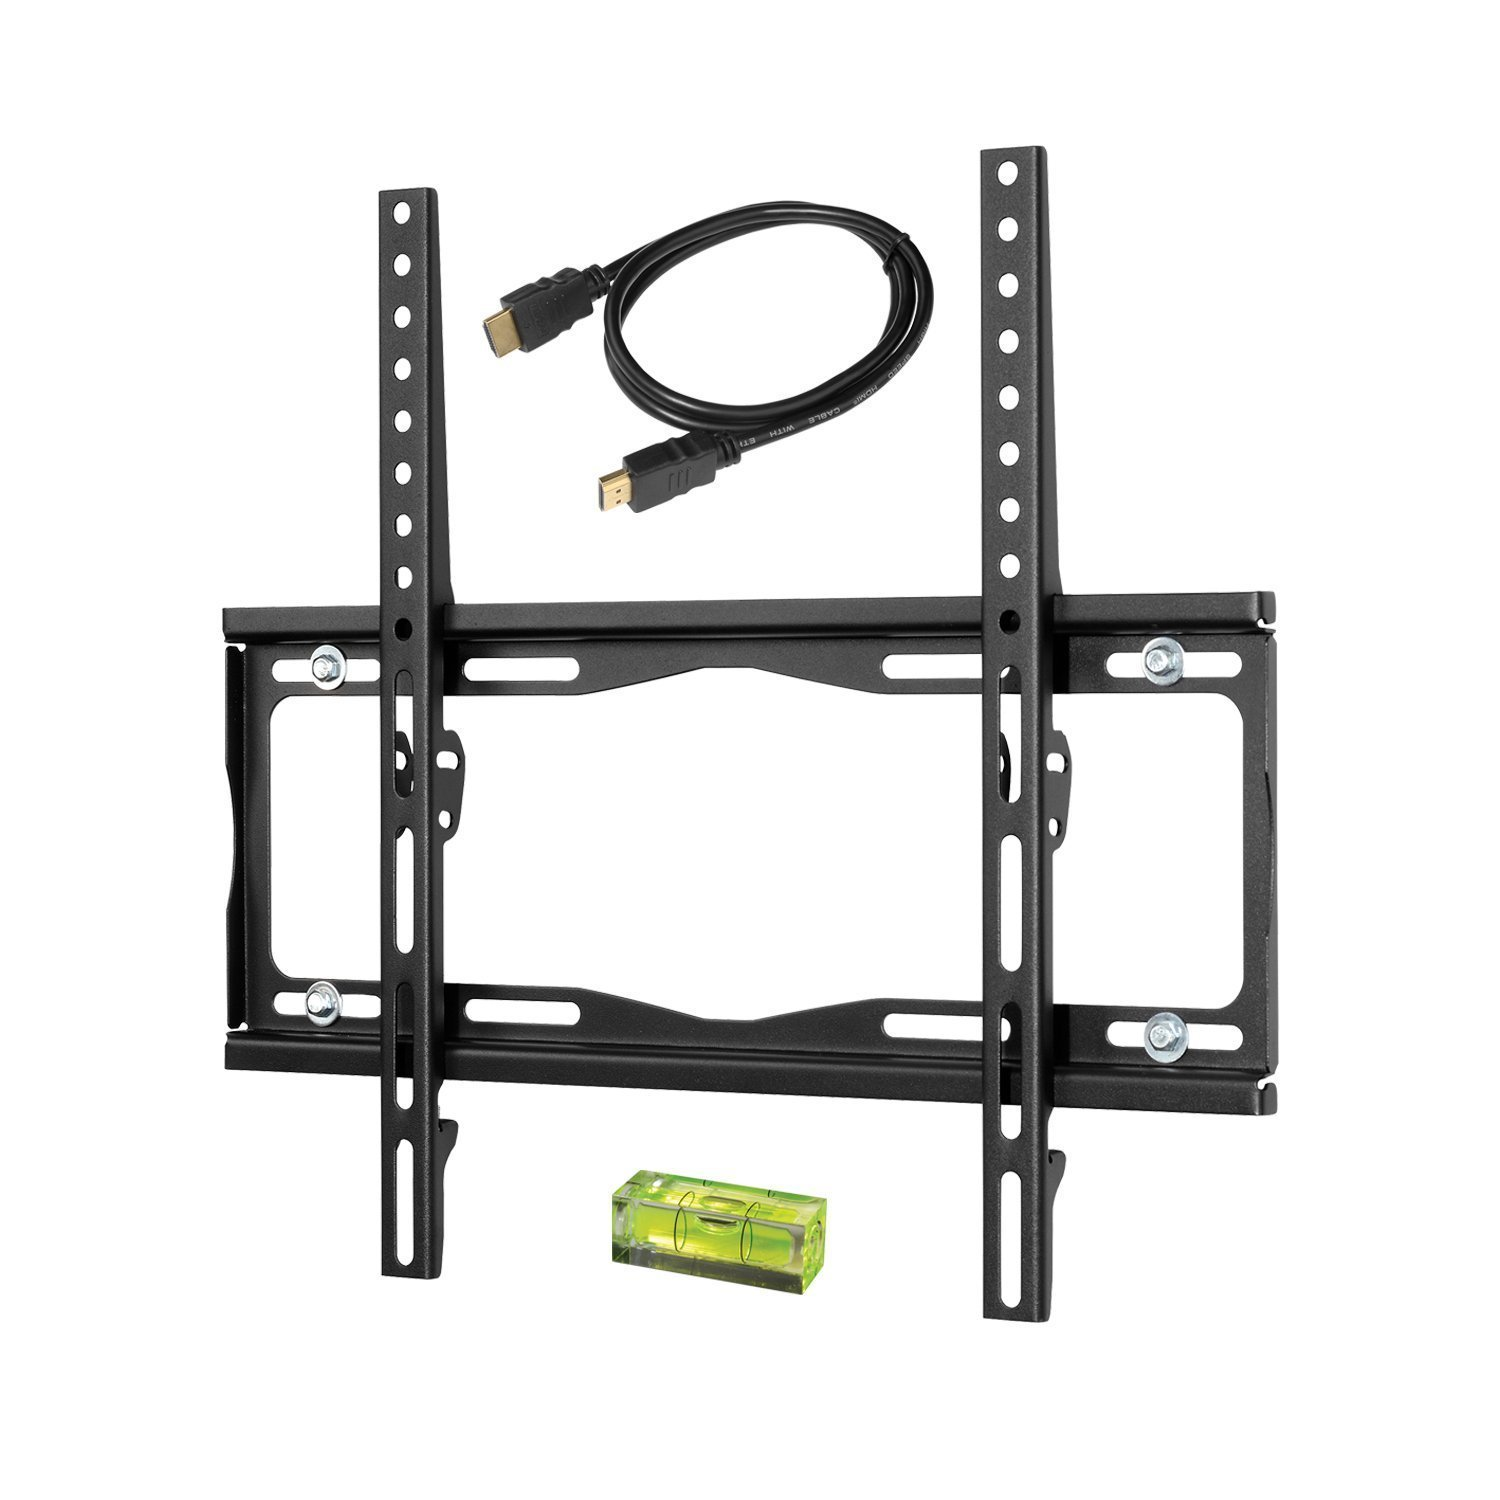 Equa Mount Flat Wall Mount for 22' to 55' TVs by